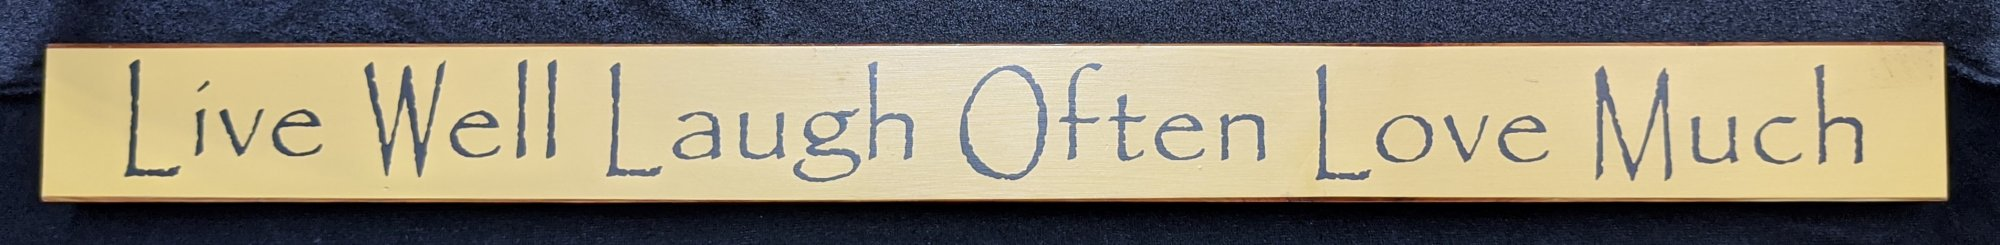 Live Well Laugh Often Love Much wooden sign